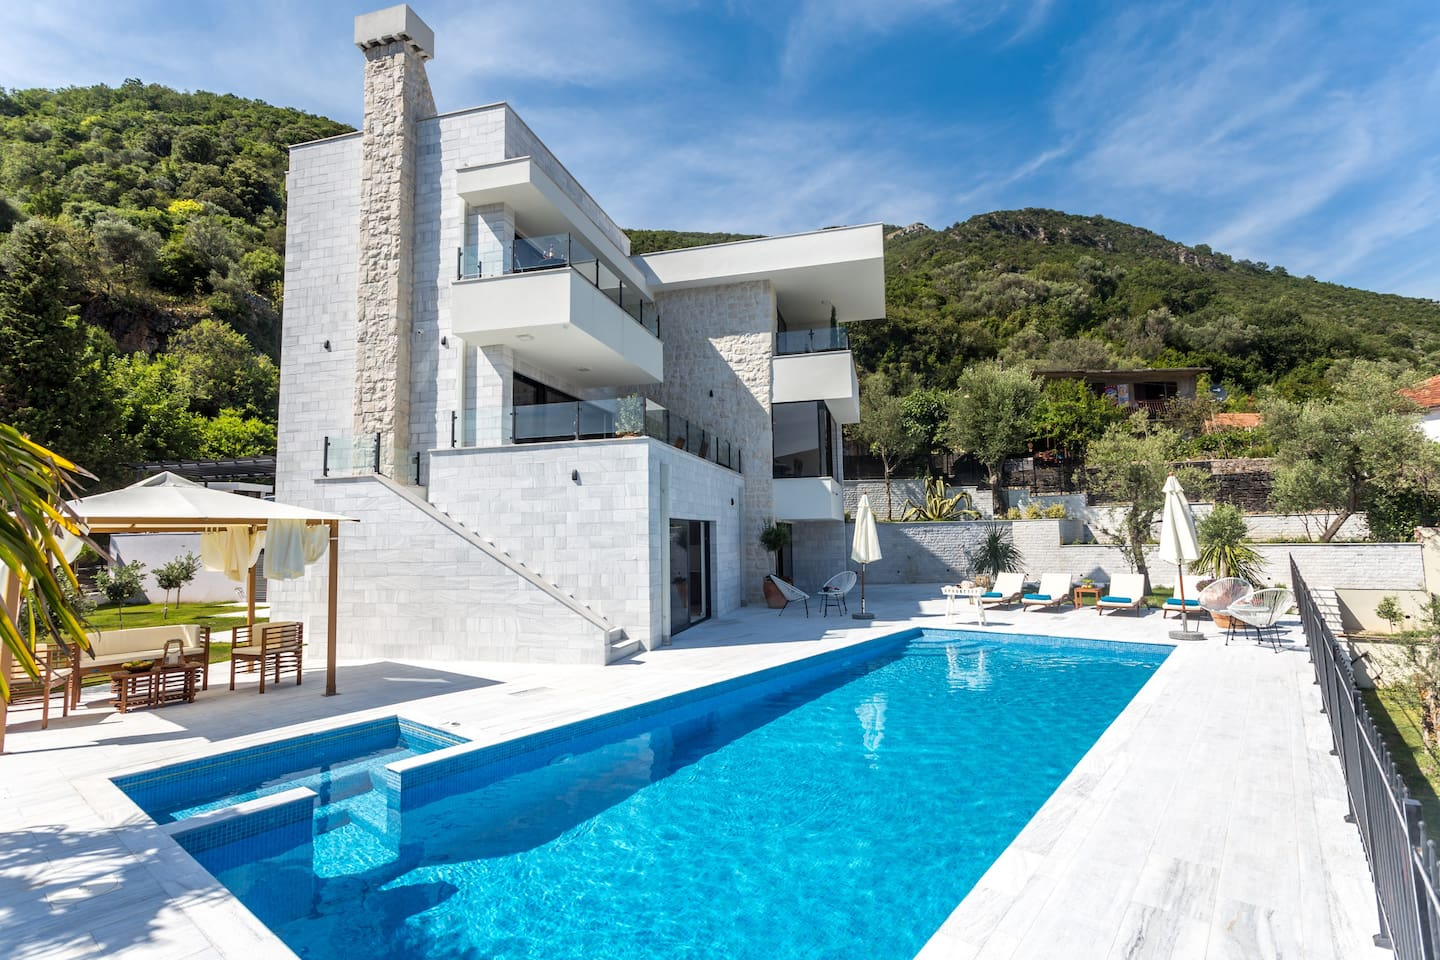 Stunning modern architecture of Villa White Olive accentuates beautiful natural surroundings alongside luxury amenities.  Here you will enjoy swimming pool, sauna and a rooftop terrace with a sea view.  Sounds like a perfect vacation!